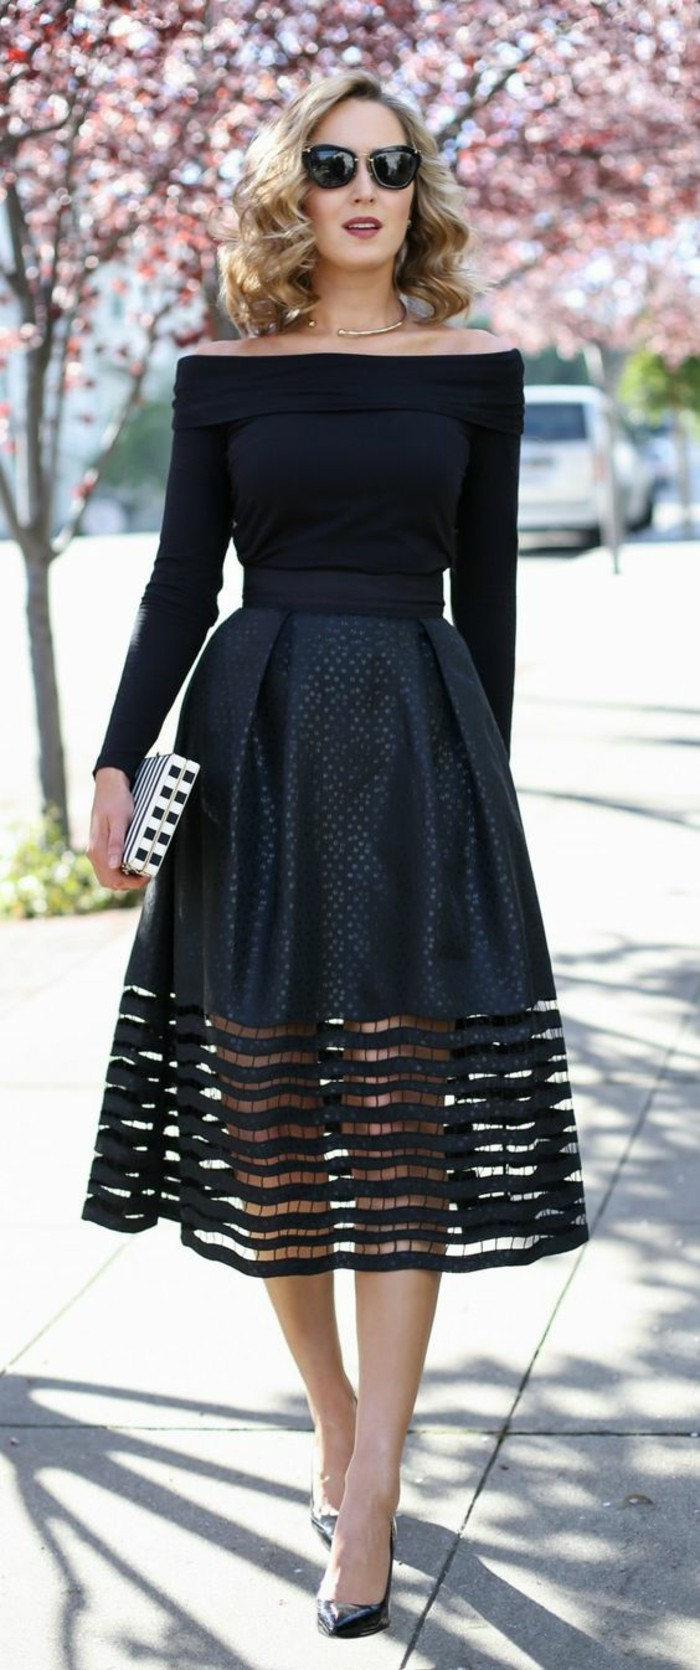 dress attire, blonde woman with shoulder-length curly hair and sunglasses, wearing black off-shoulder sweater, and black embellished skirt, with thick see-through lace hem